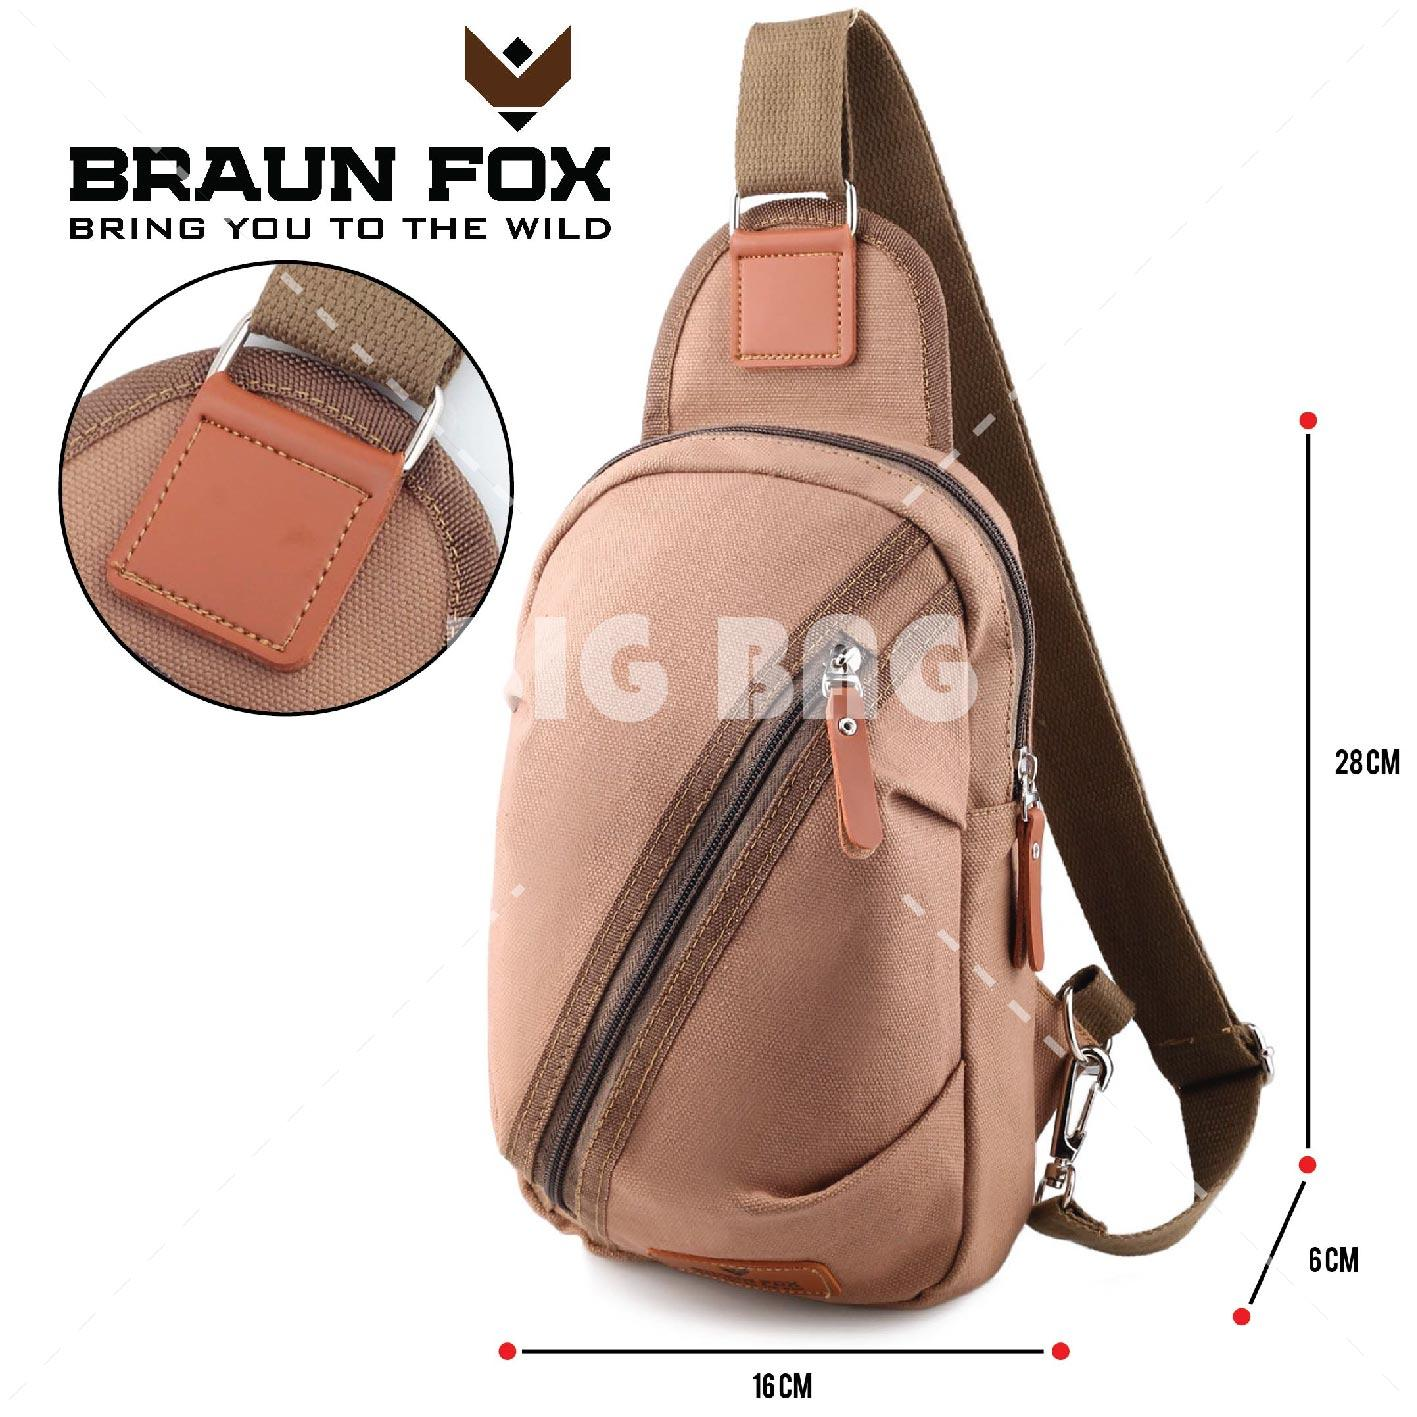 Tas Selempang Braun Fox Phillomon ARC - Fashion Men and Women Messenger Bag Casual Shoulder Canvas Chest Bag Packs Ruched Bags - Black - Tas Sandang Pria Tas Messenger Tas Slempang Crossbody Man Tas Fashion Pria